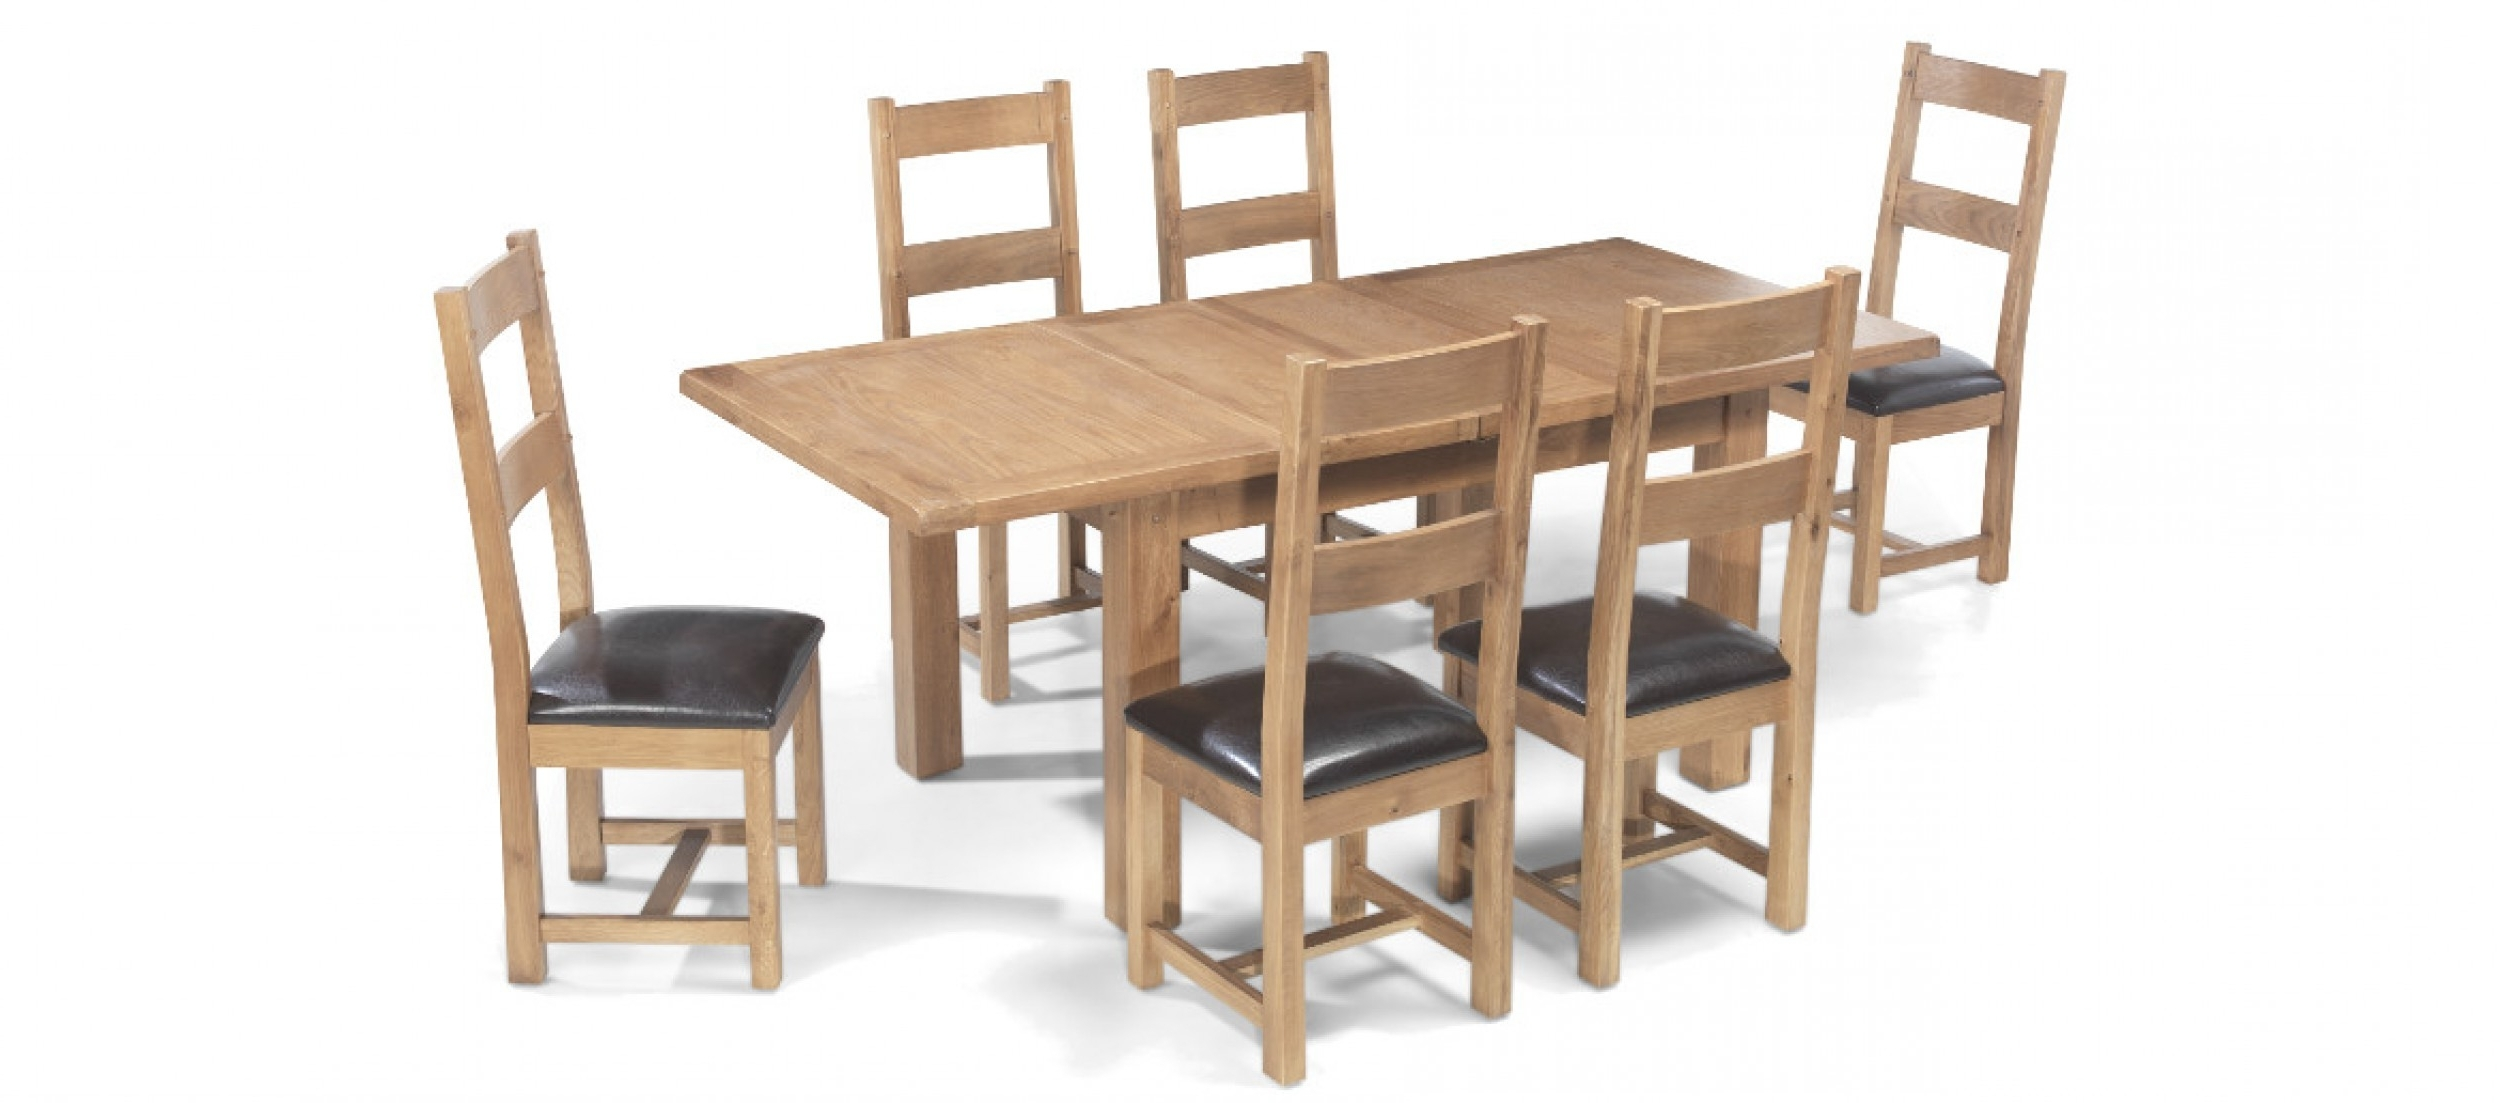 Quercus Pertaining To Most Up To Date Chunky Solid Oak Dining Tables And 6 Chairs (View 8 of 25)